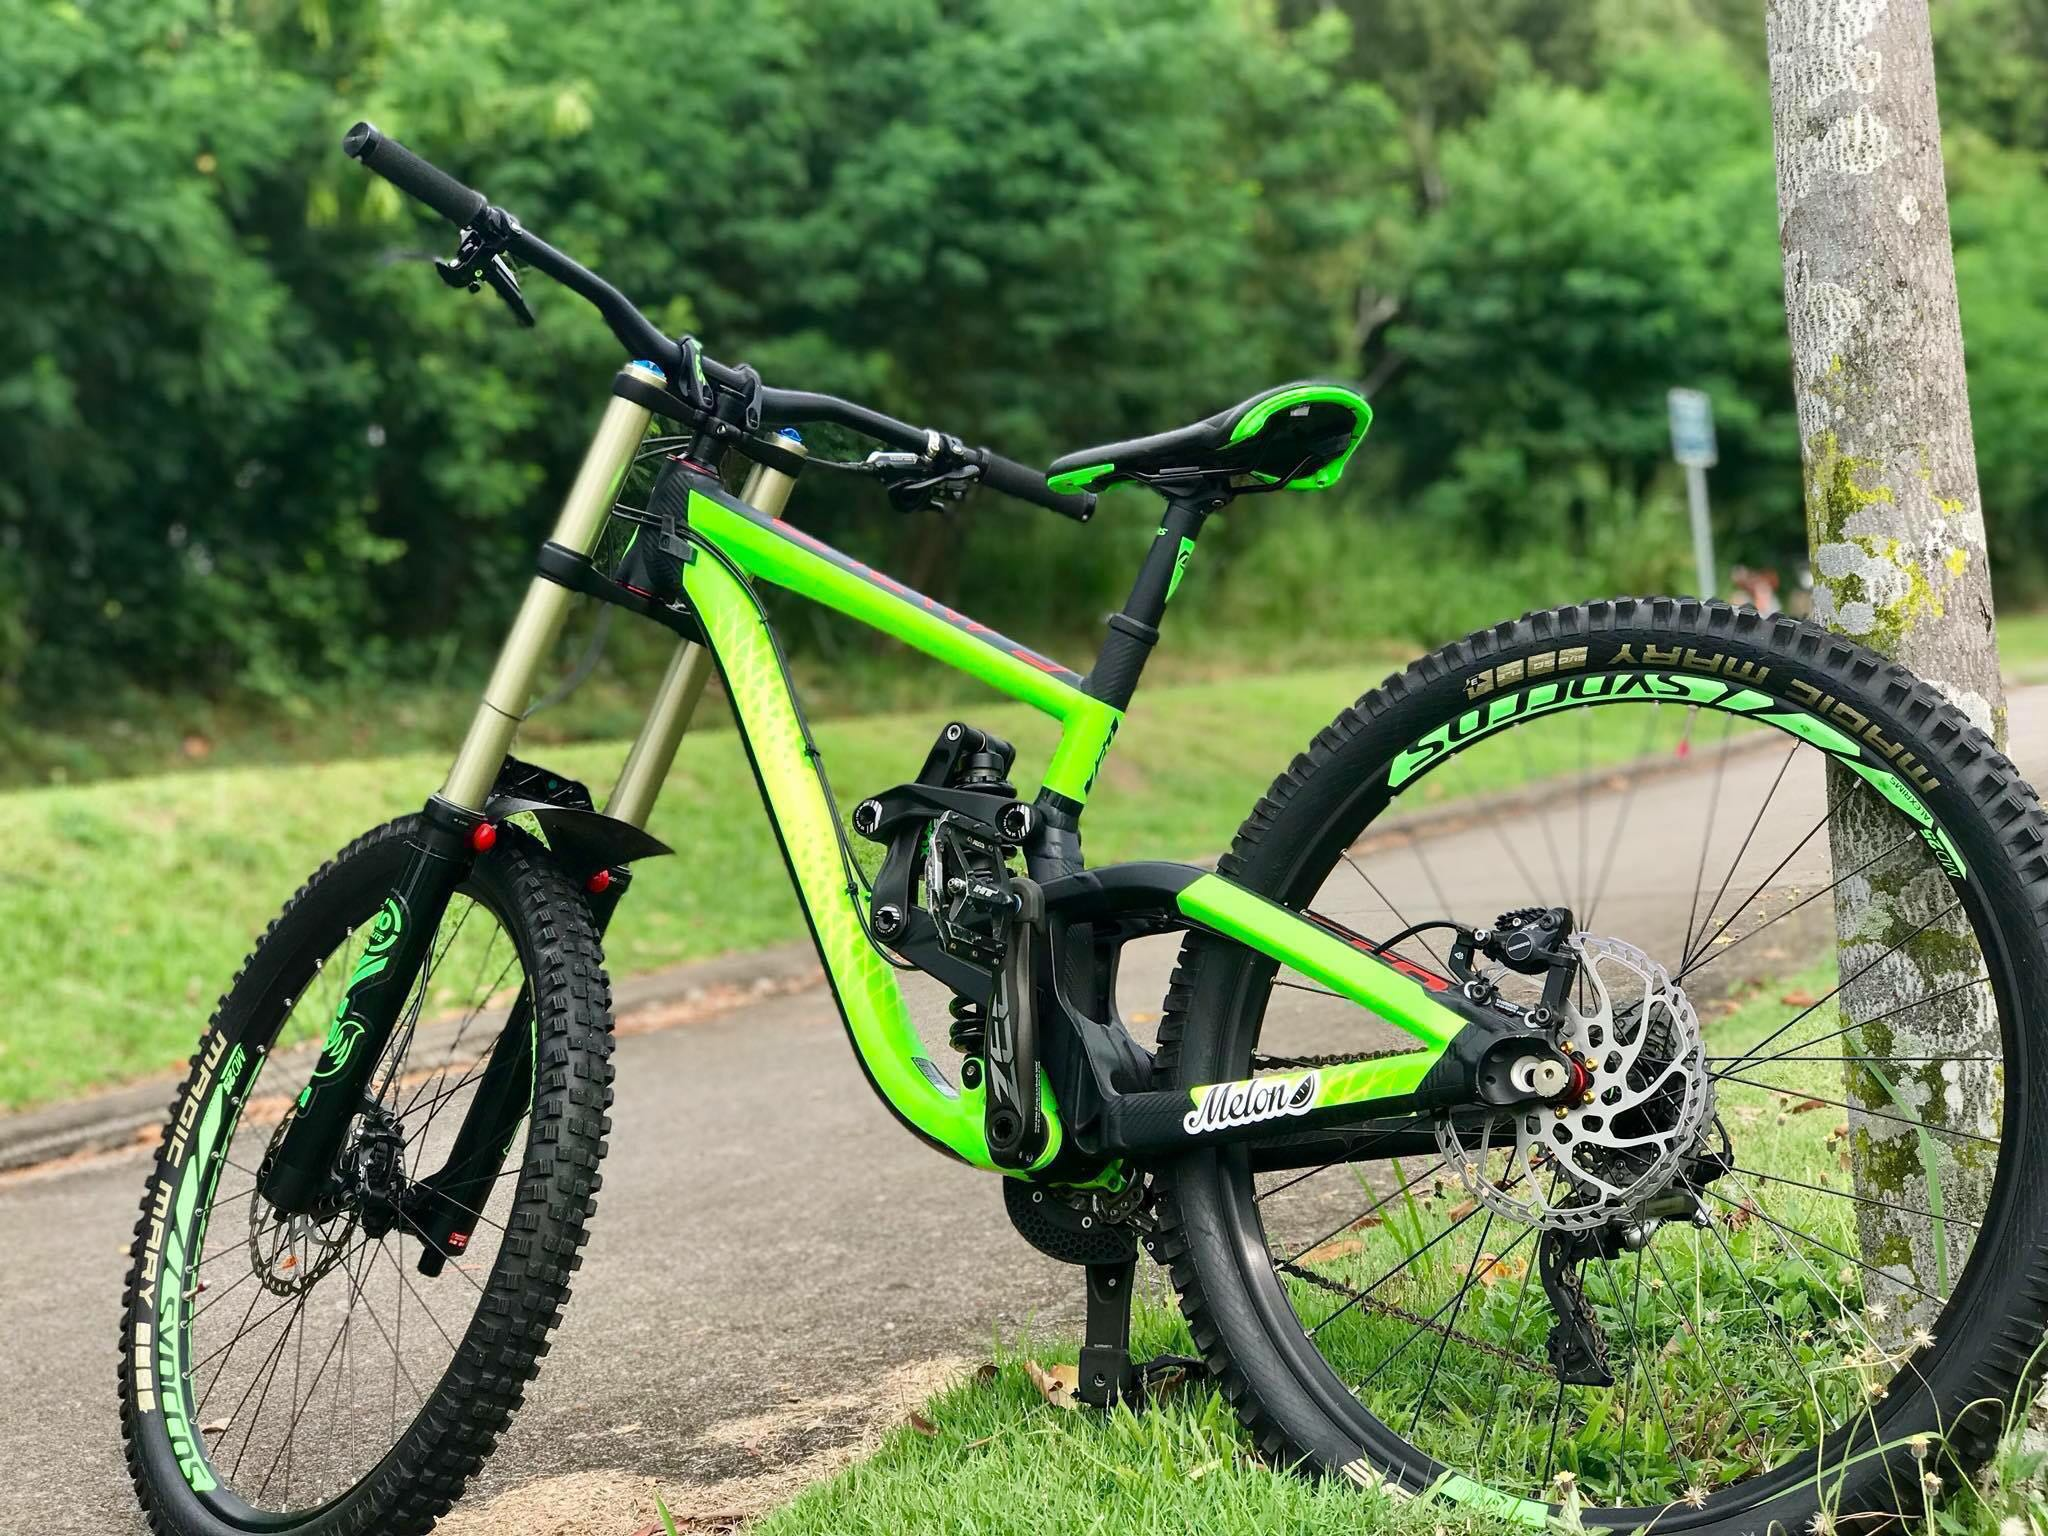 a1b7d360654 2016 Scott Gambler 720 DH, Bicycles & PMDs, Bicycles, Mountain Bikes on  Carousell